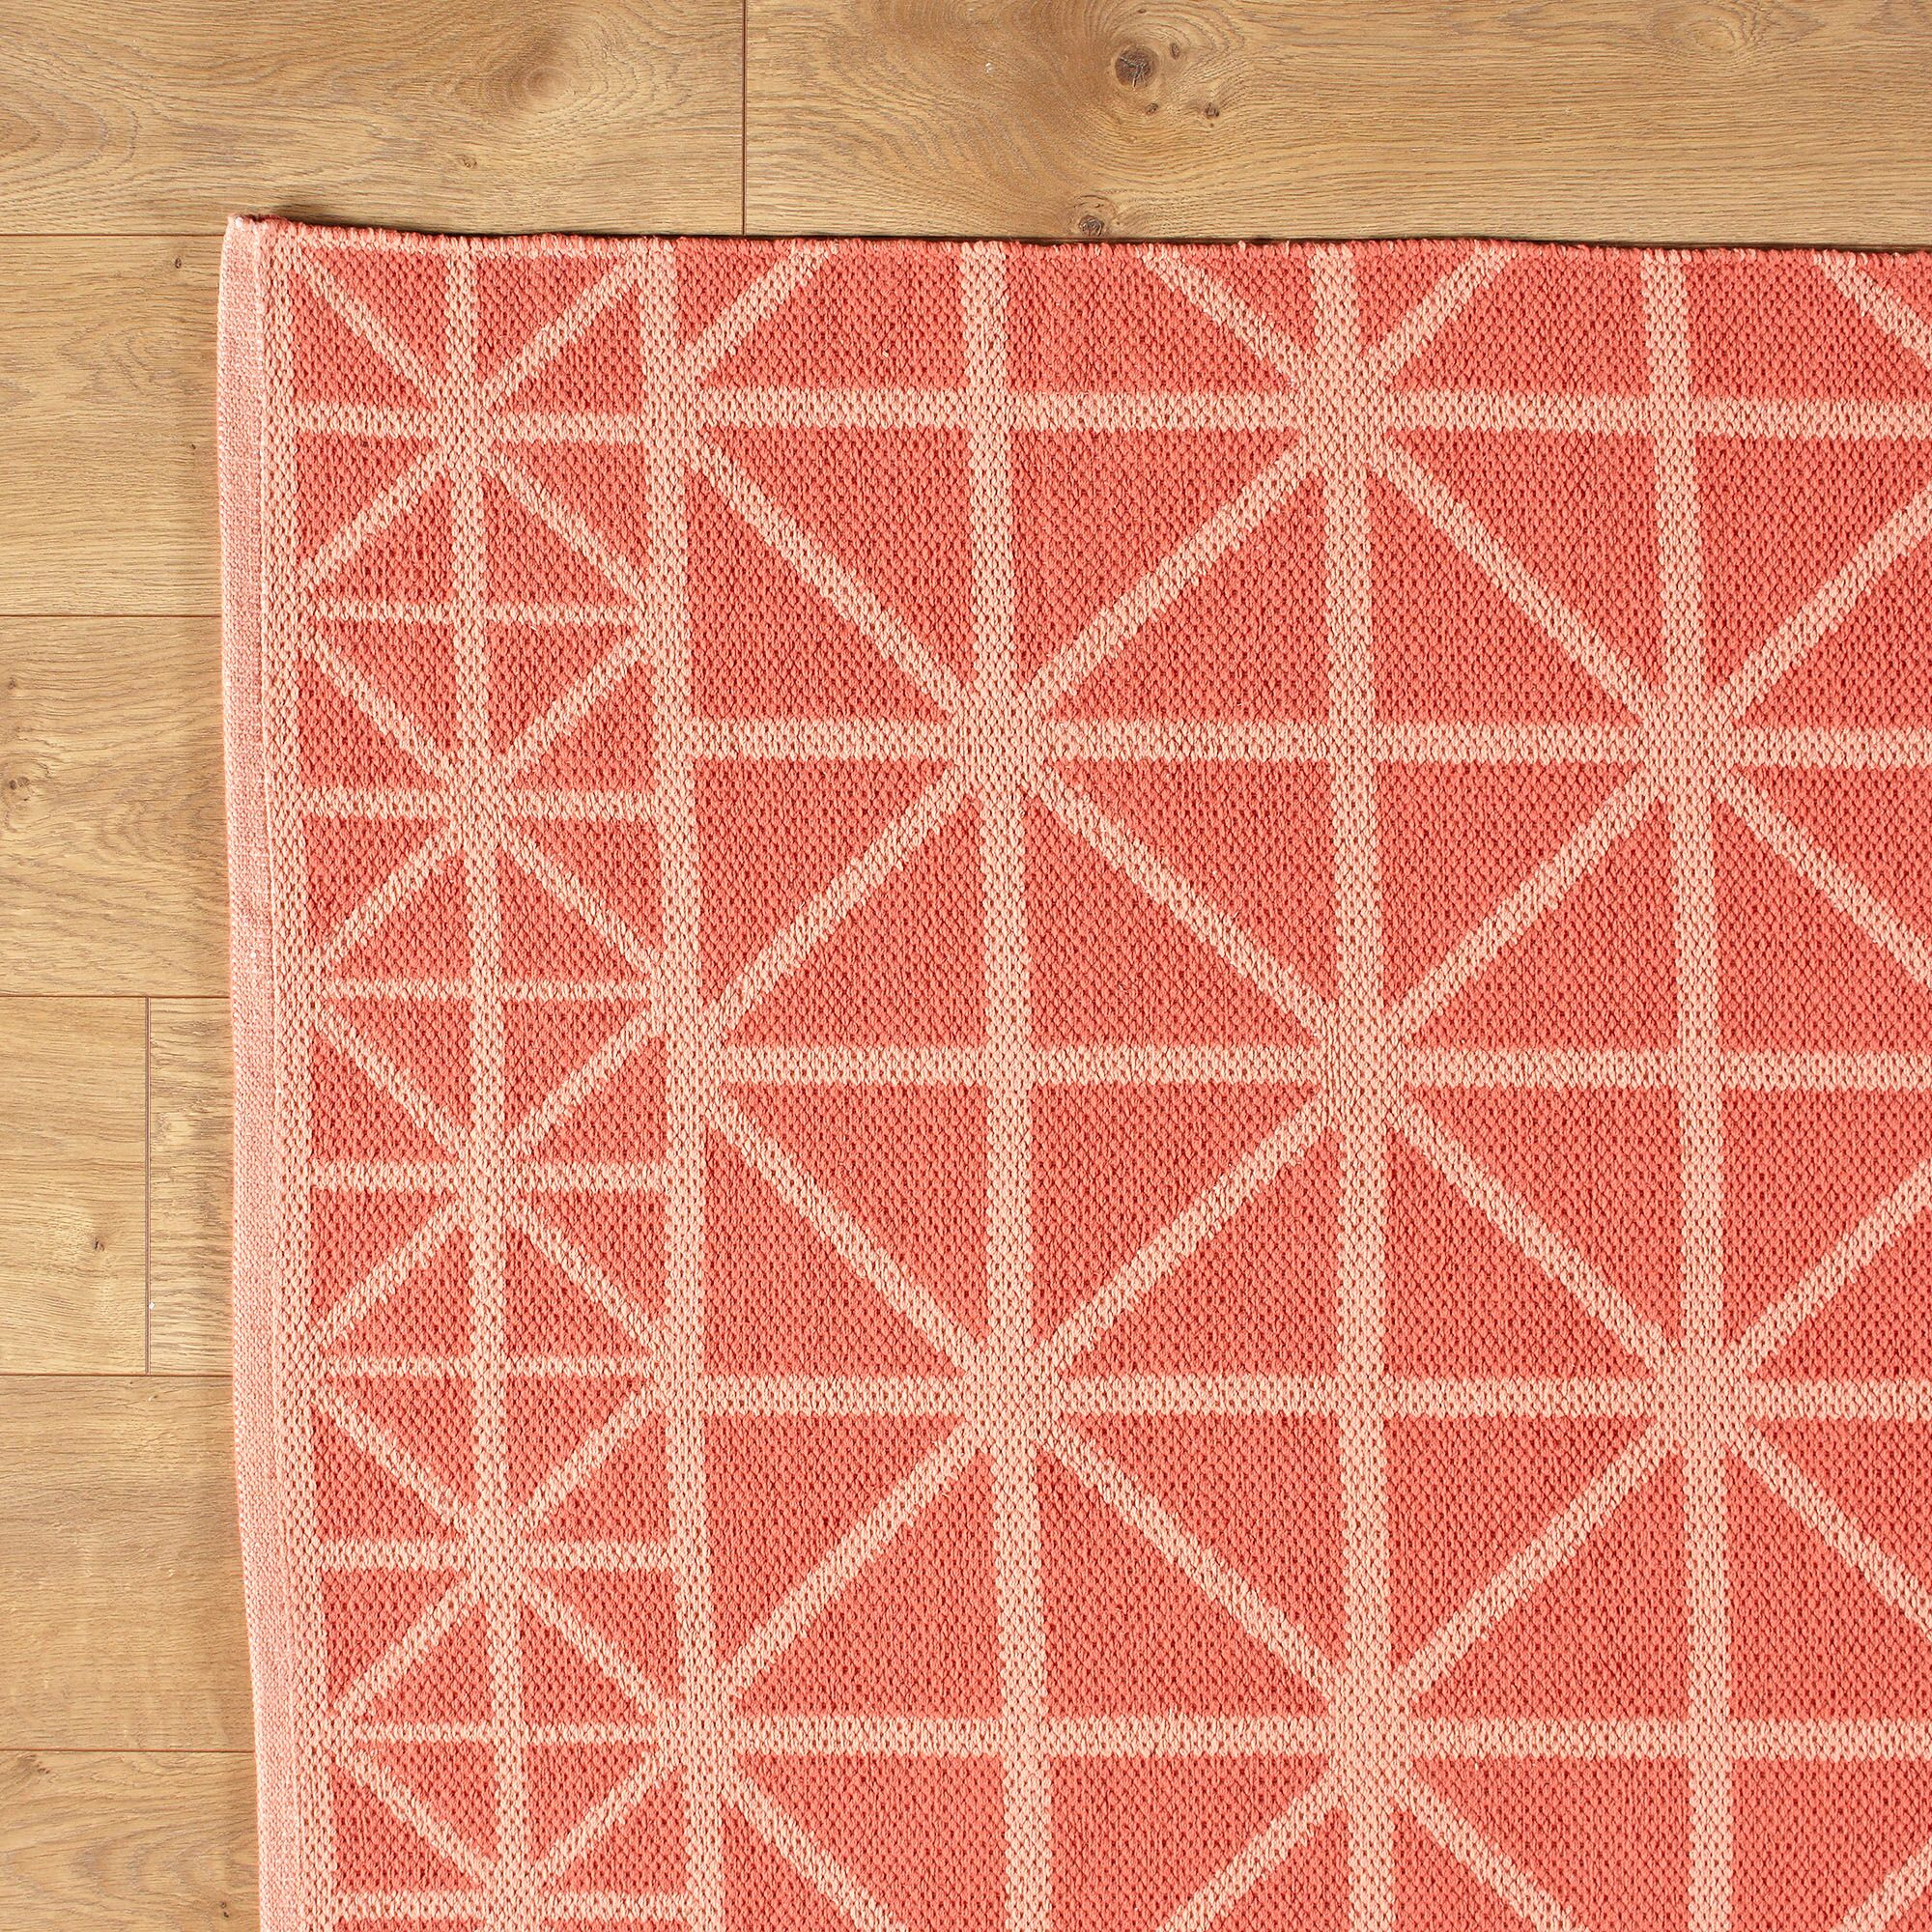 Tri Your Best Coral Reversible Rug Rug Size: 5' x 8'